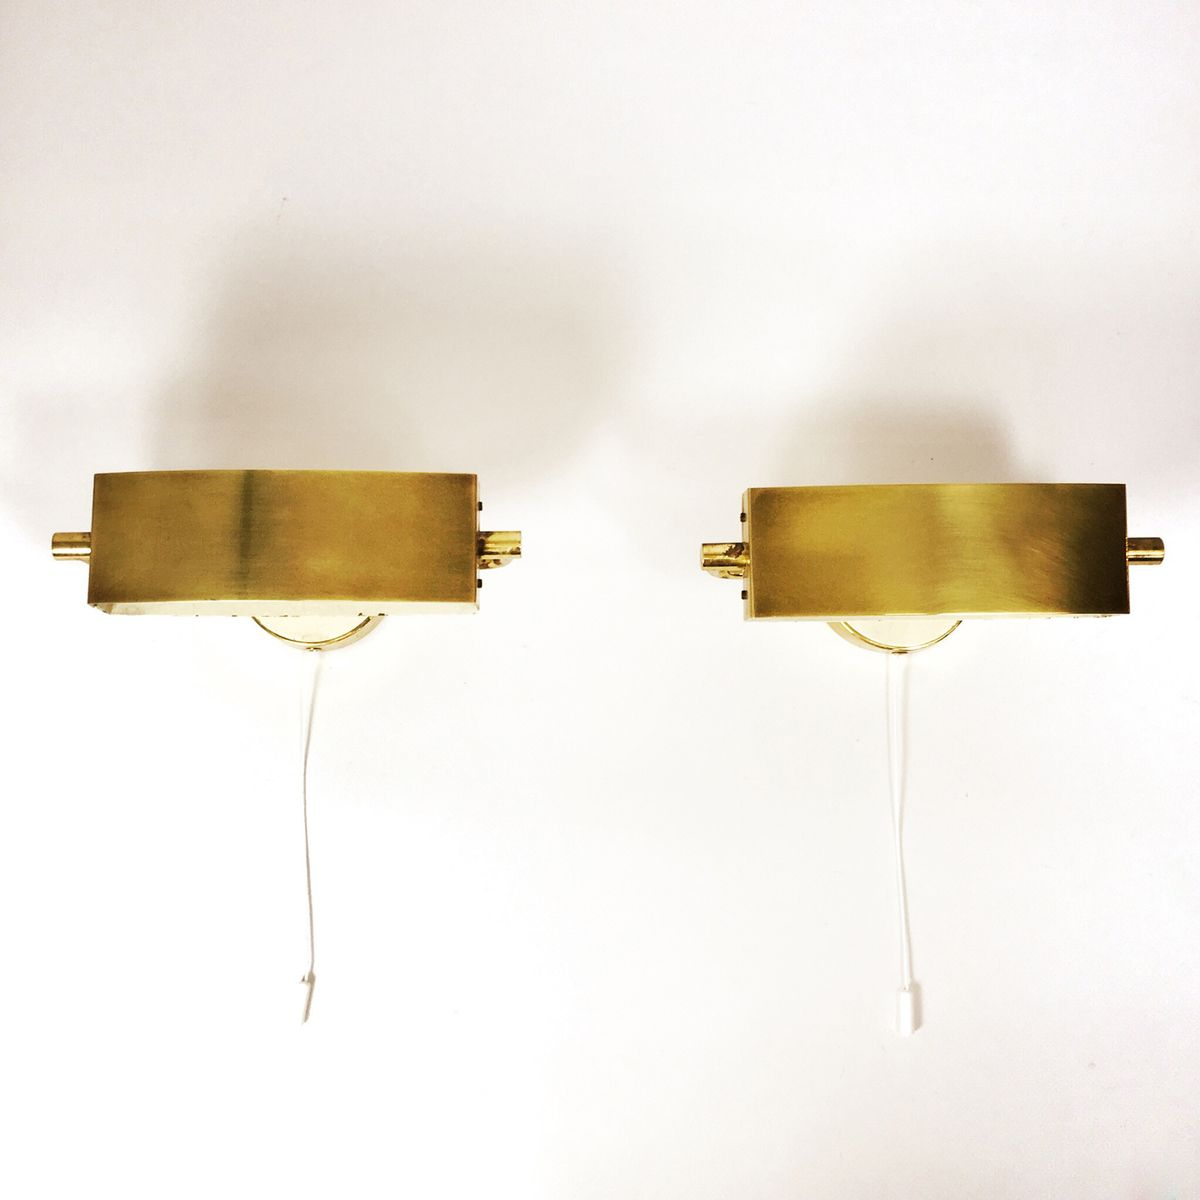 Wall Mount Lamp Set : French Wall Mounted Lamps, 1950s, Set of 2 for sale at Pamono